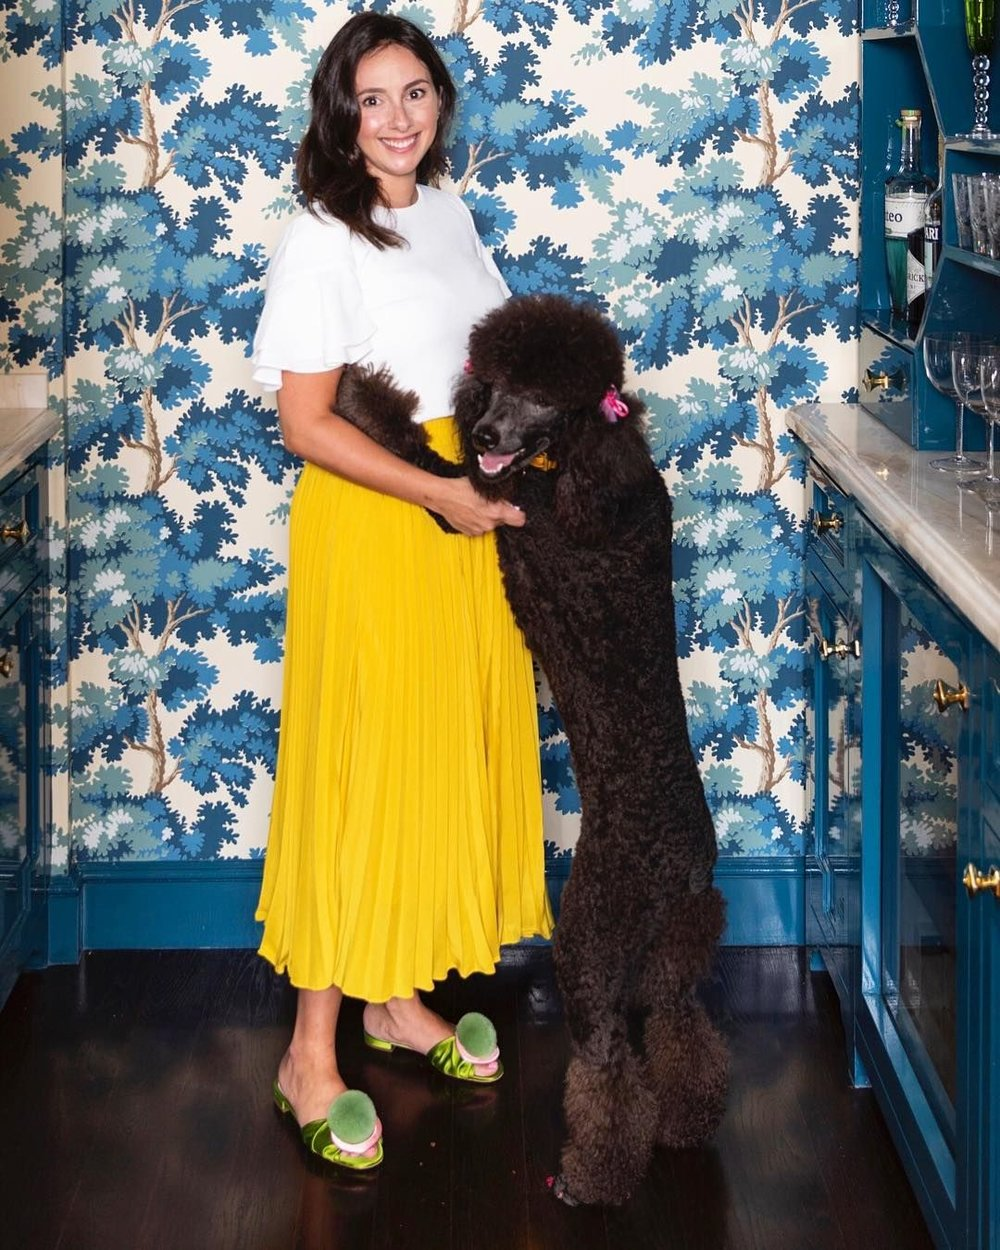 Bailey and her fabulous poodle Barbara.